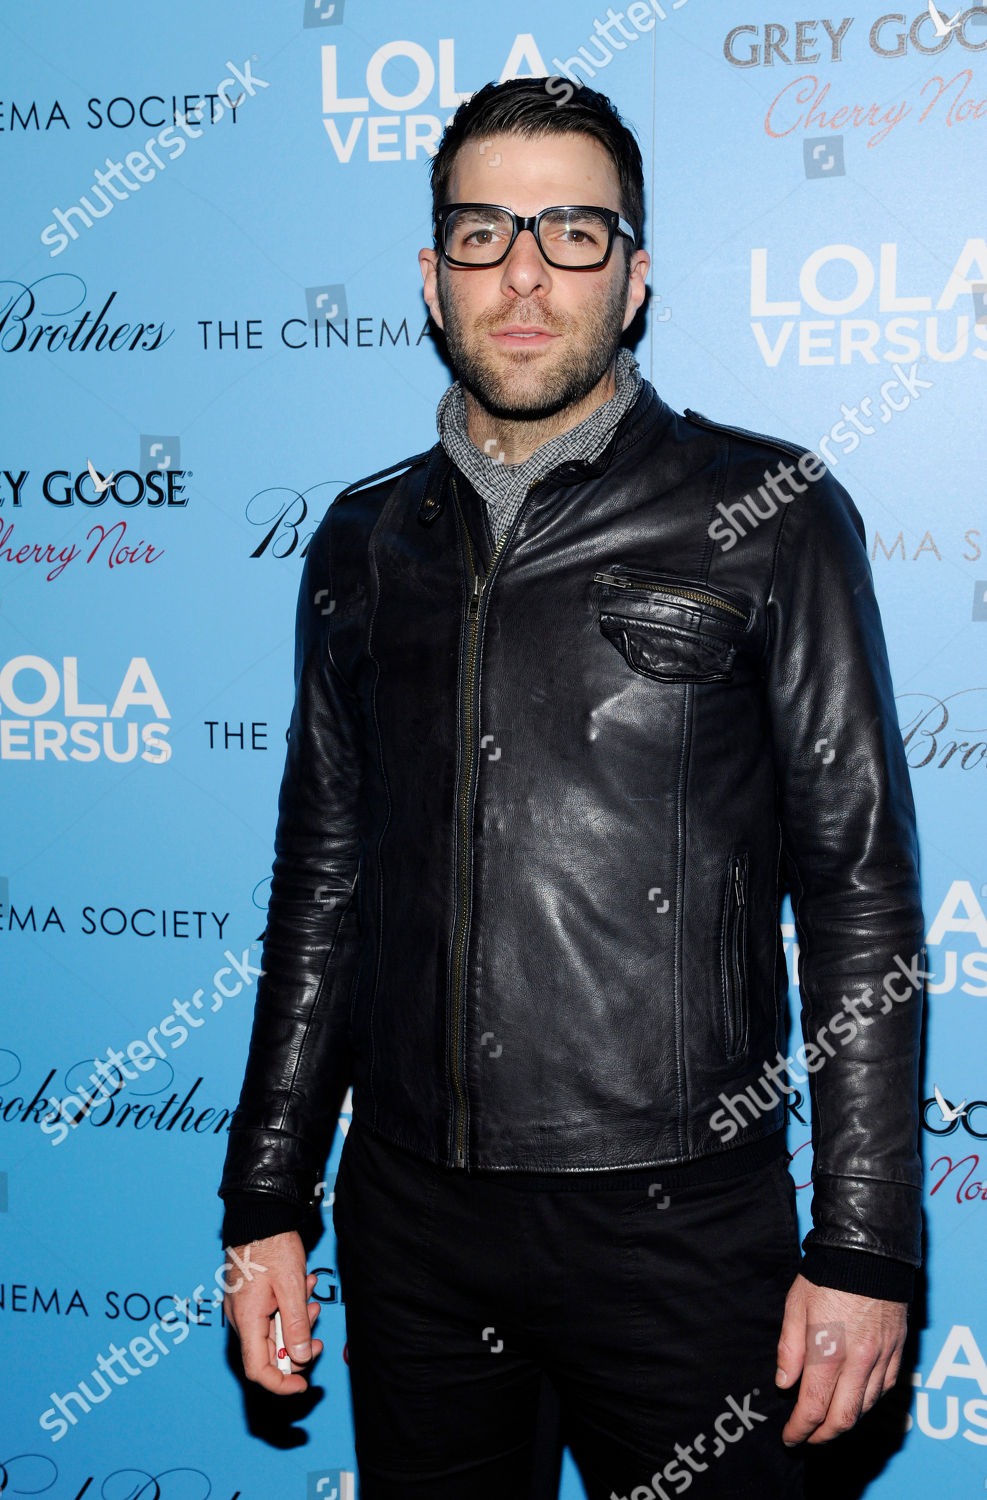 Actor Zachary Quinto attends special screening Lola